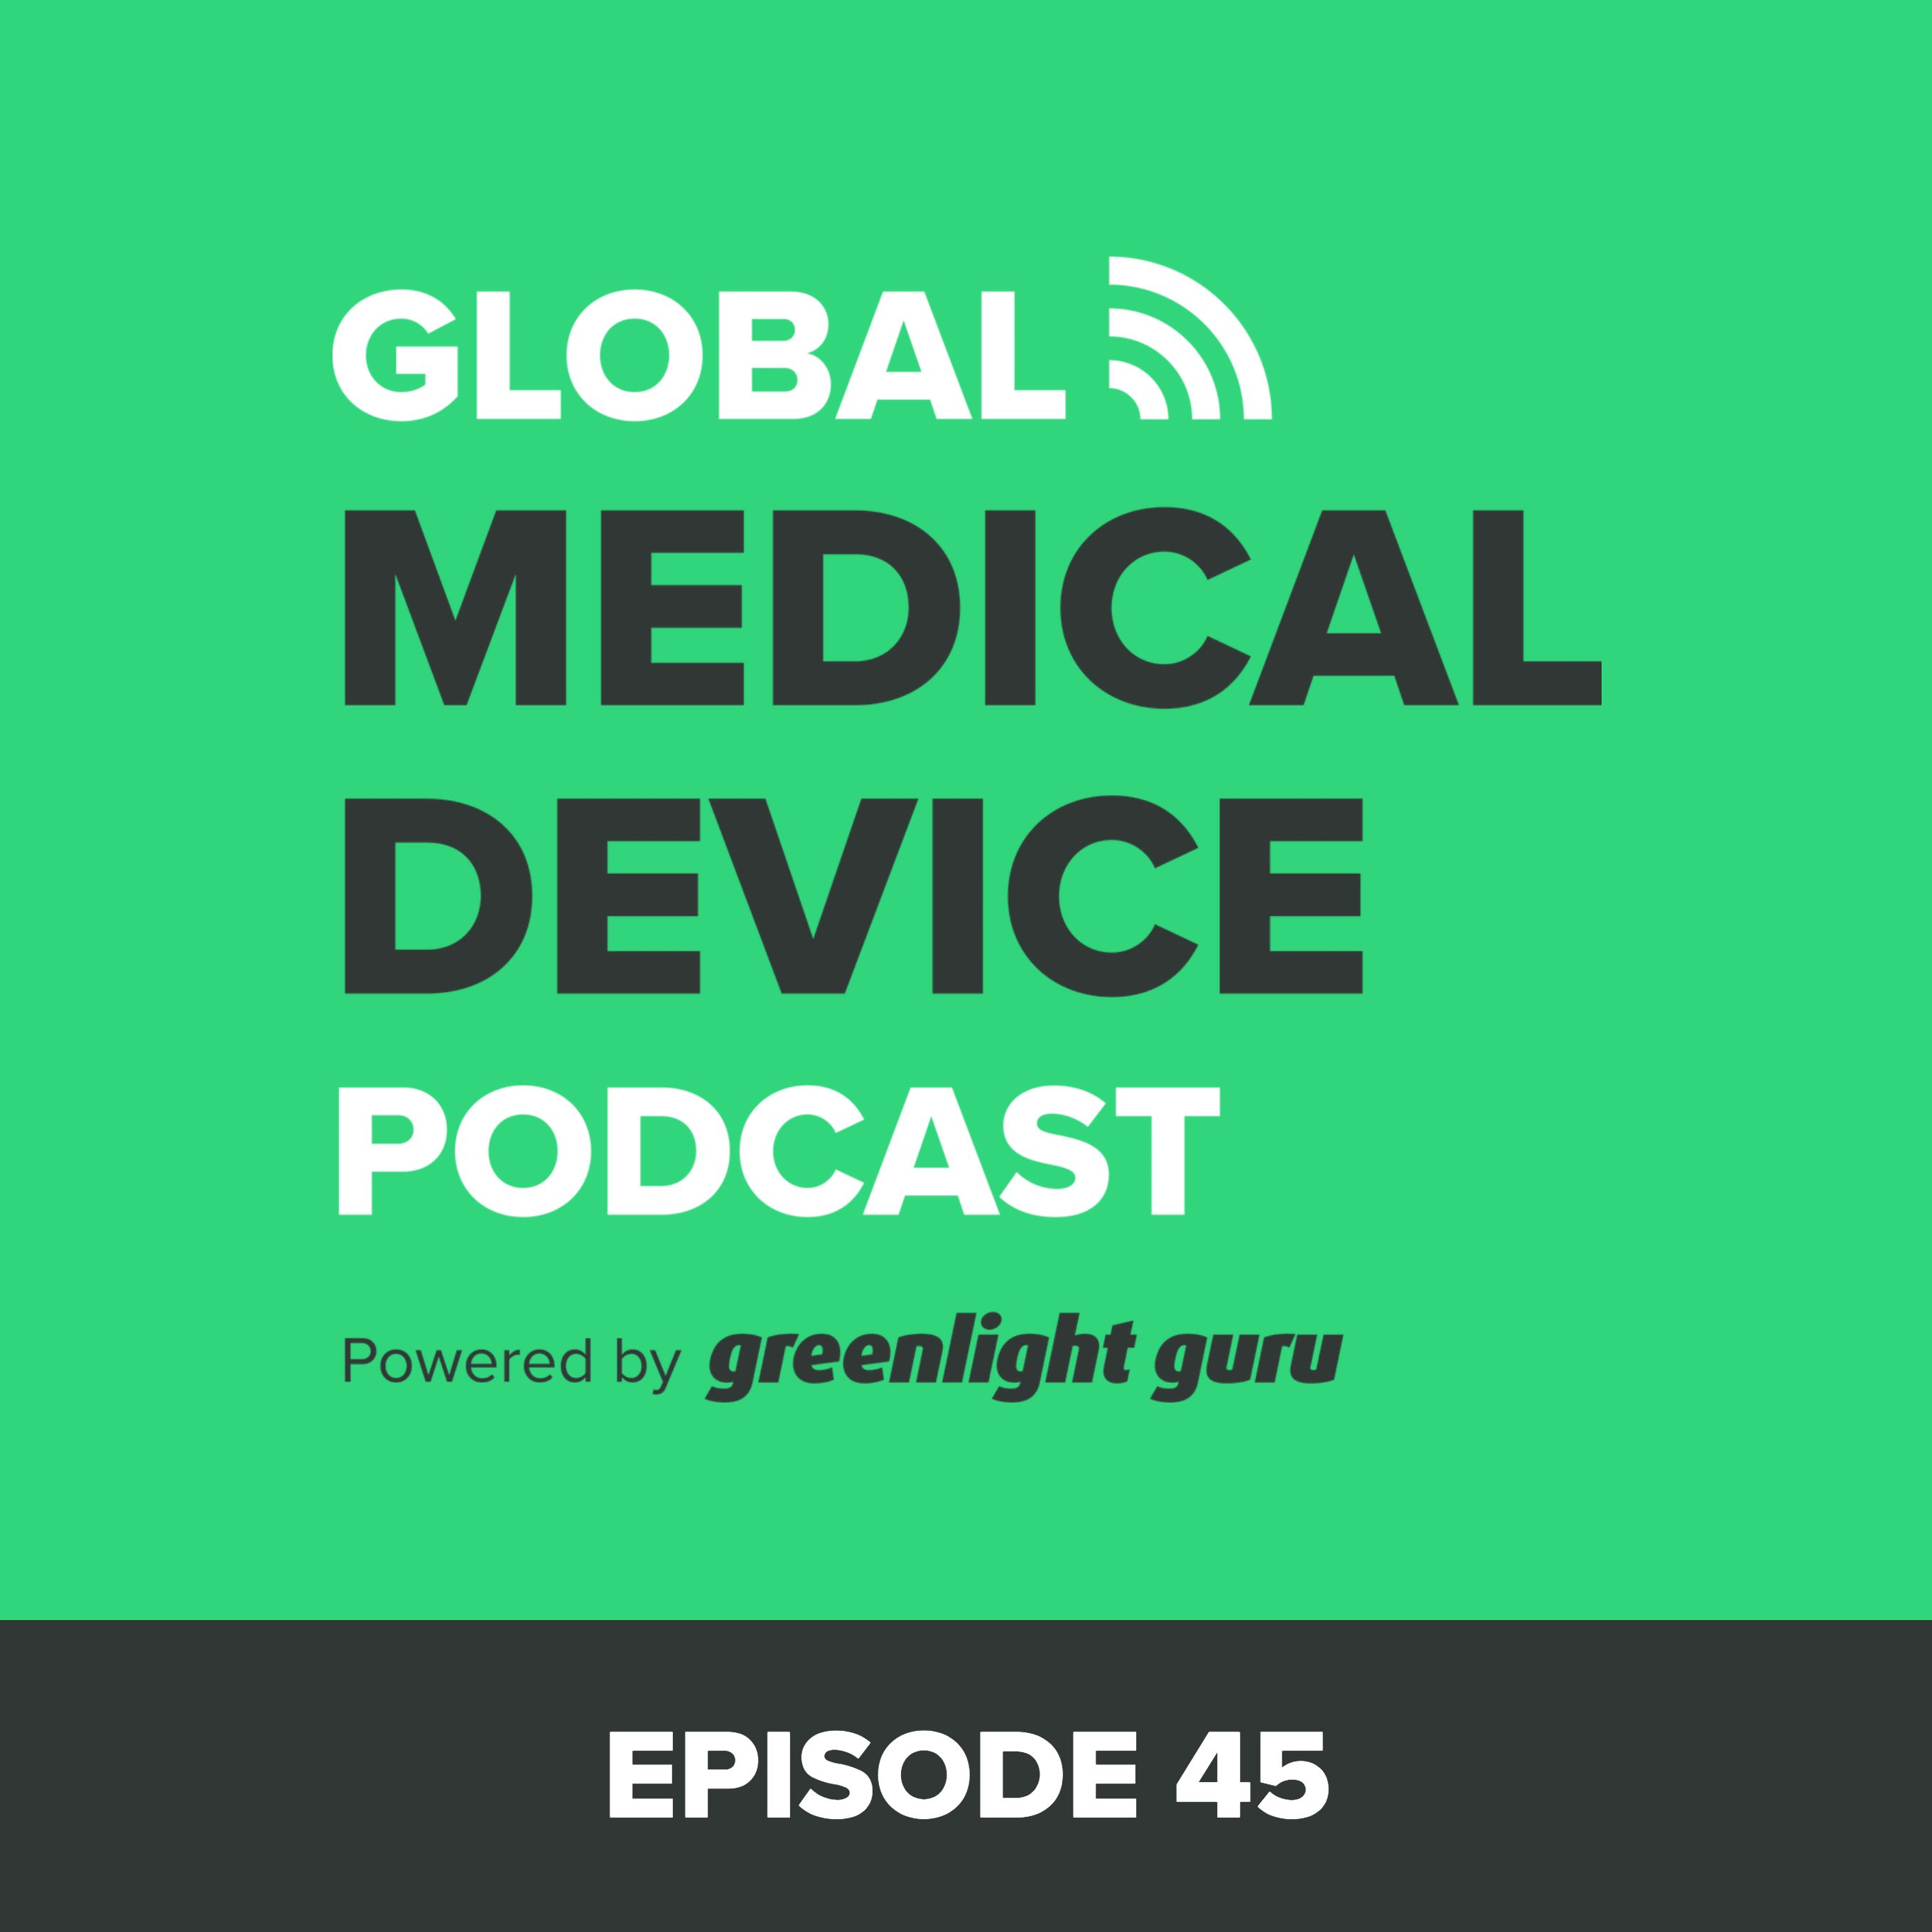 Understanding the Difference Between a General Wellness Device and a Regulated Medical Device